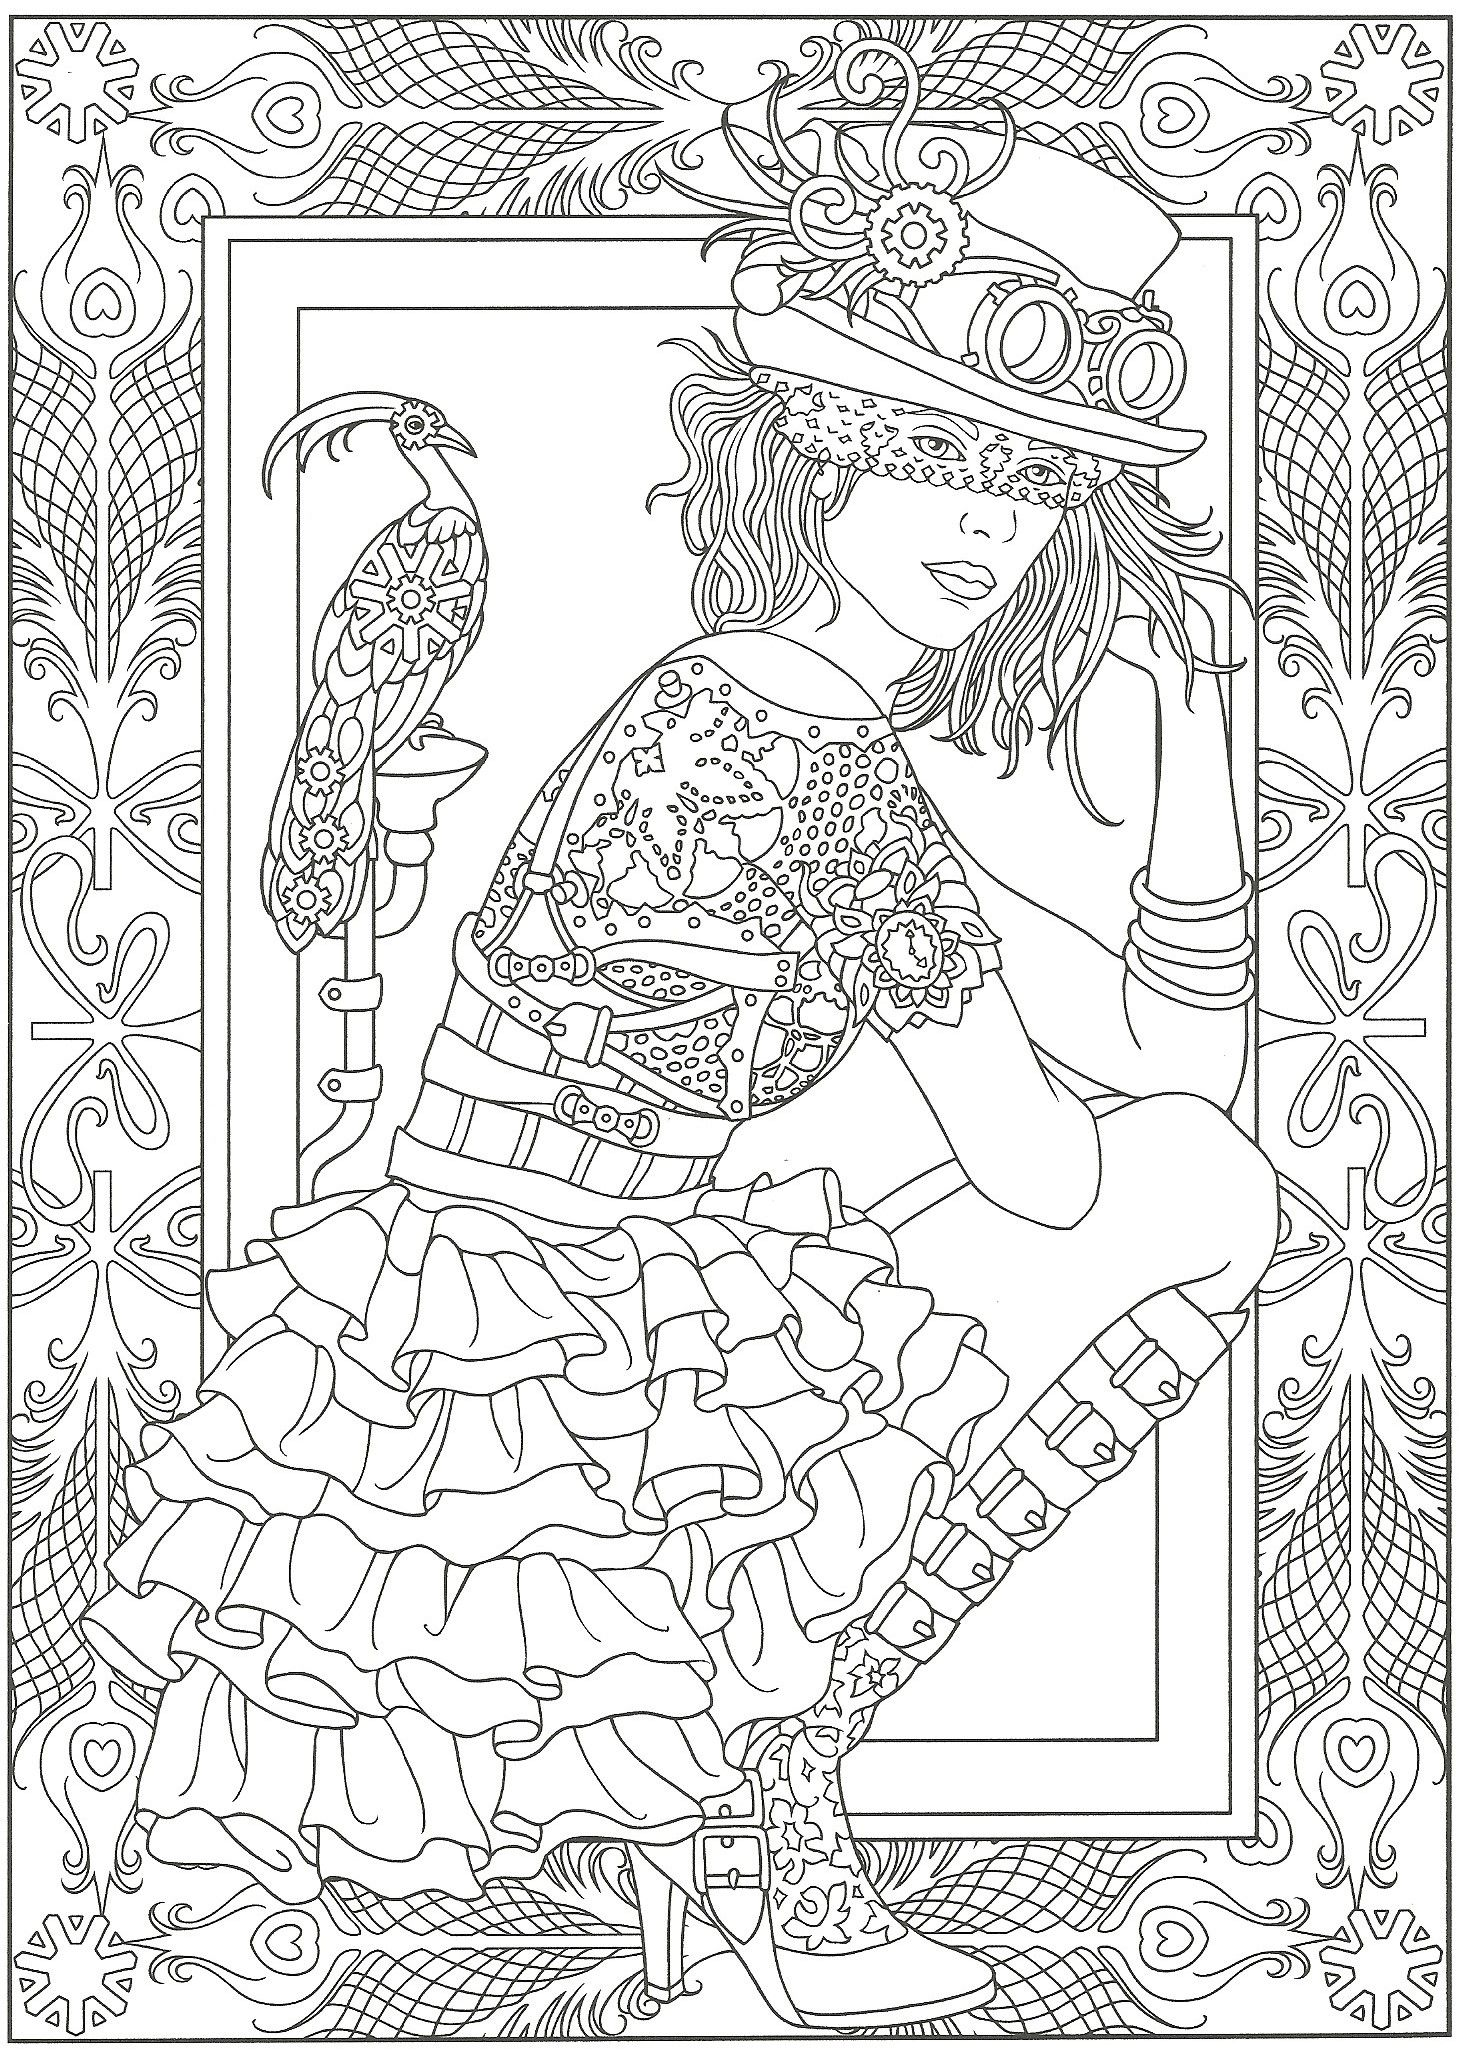 Steampunk. Artwork by Marty Noble. Adult Coloring Page